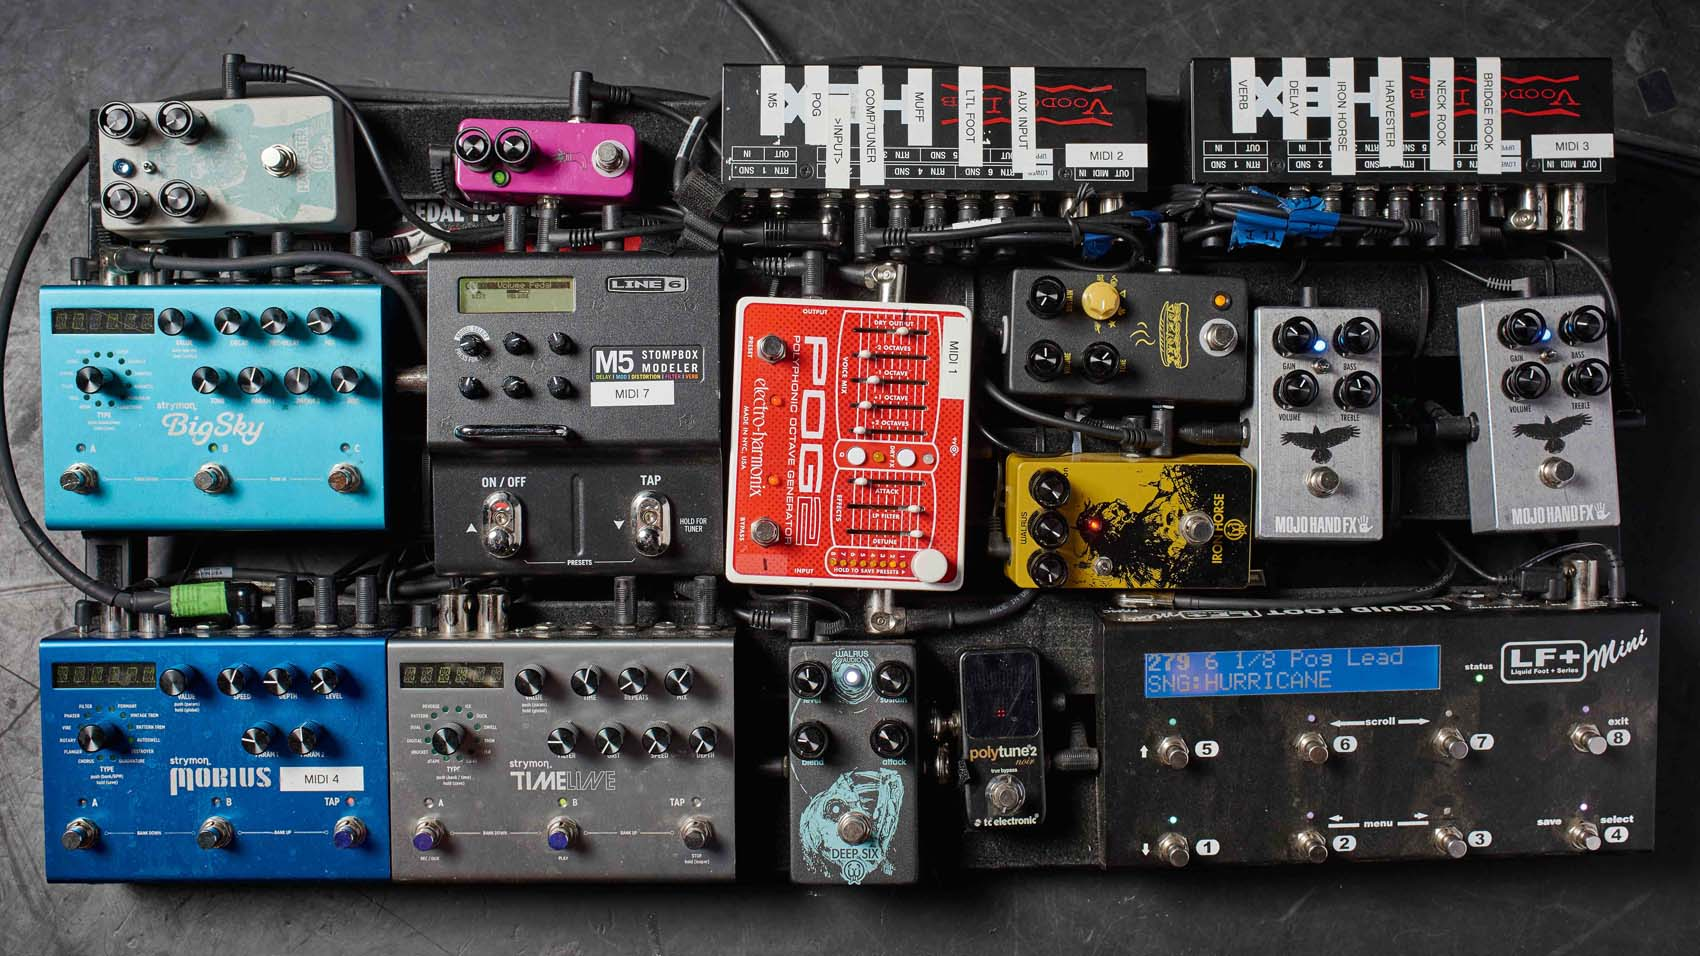 In pictures: 68 pro guitarists' pedalboards | MusicRadar